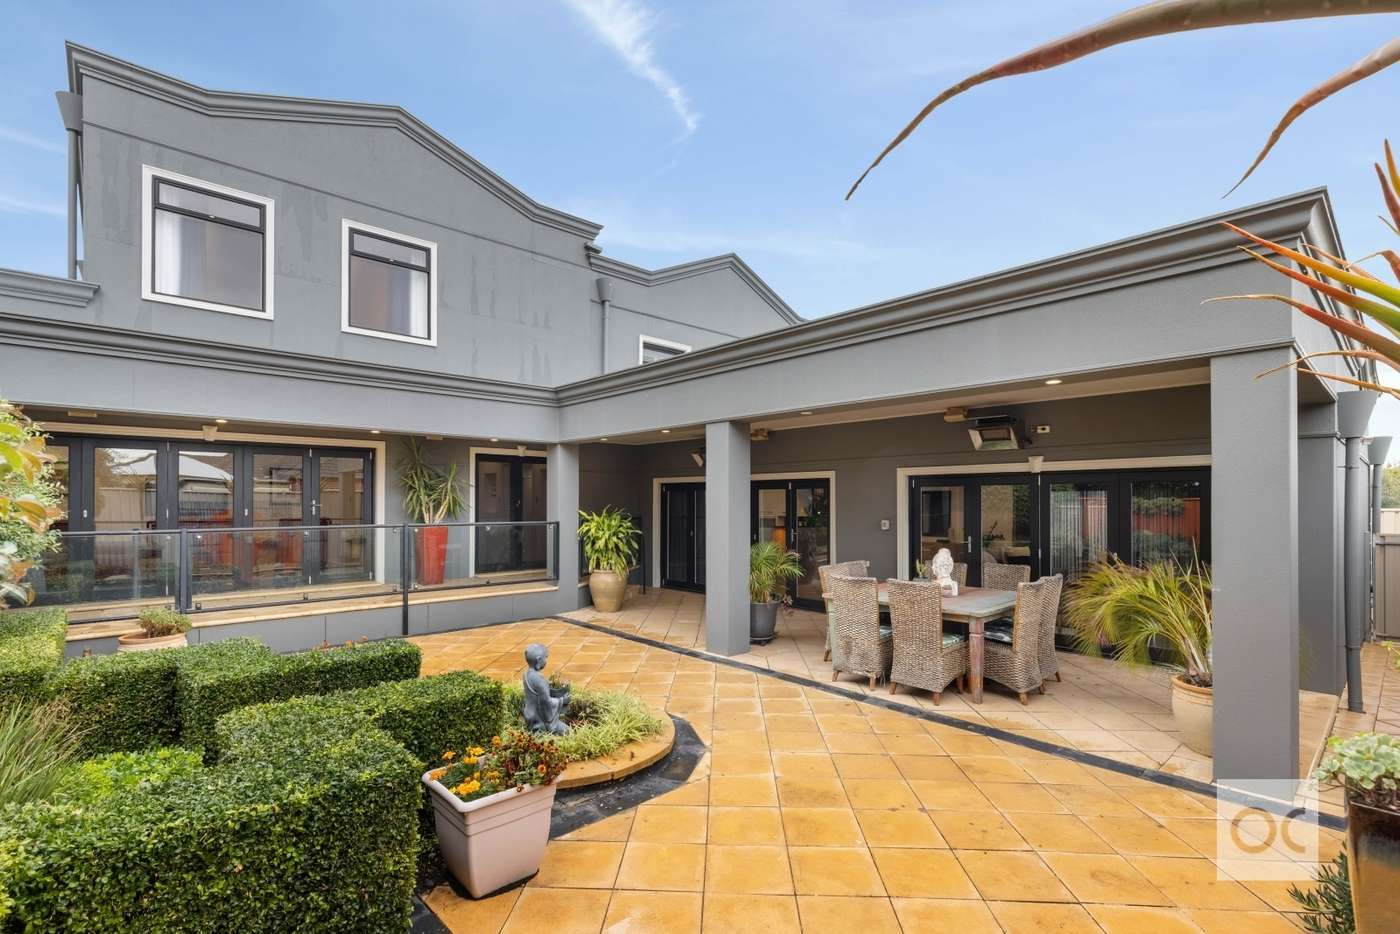 Main view of Homely house listing, 40 Martin Avenue, Fitzroy SA 5082